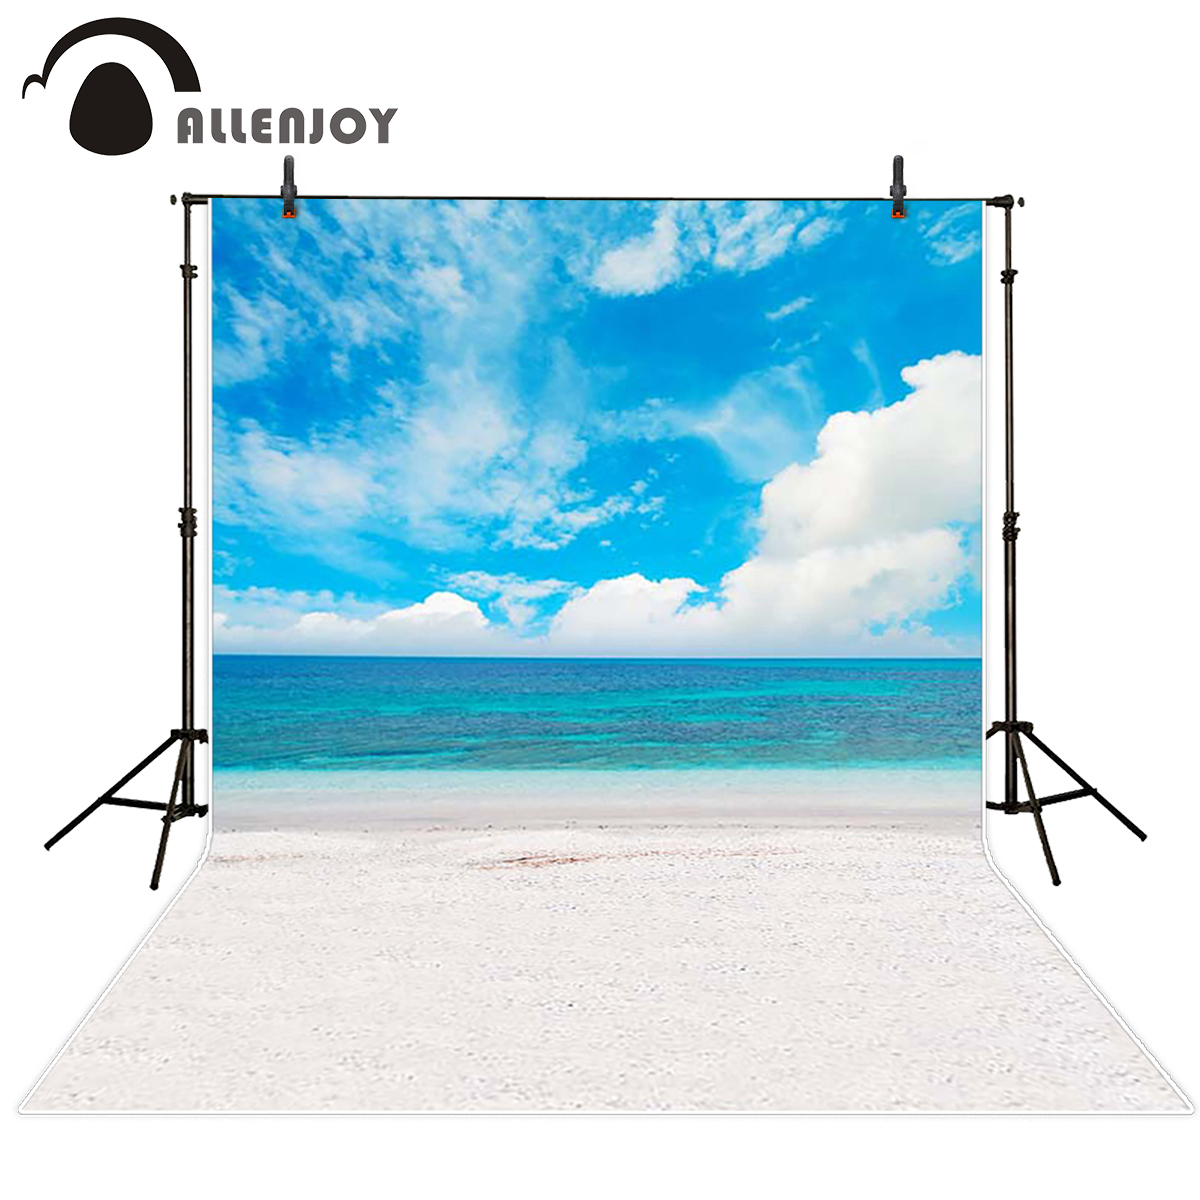 Allenjoy scenery photo backdrop Coral sand blue sea and sky backgrounds for photo studio photography background photocall